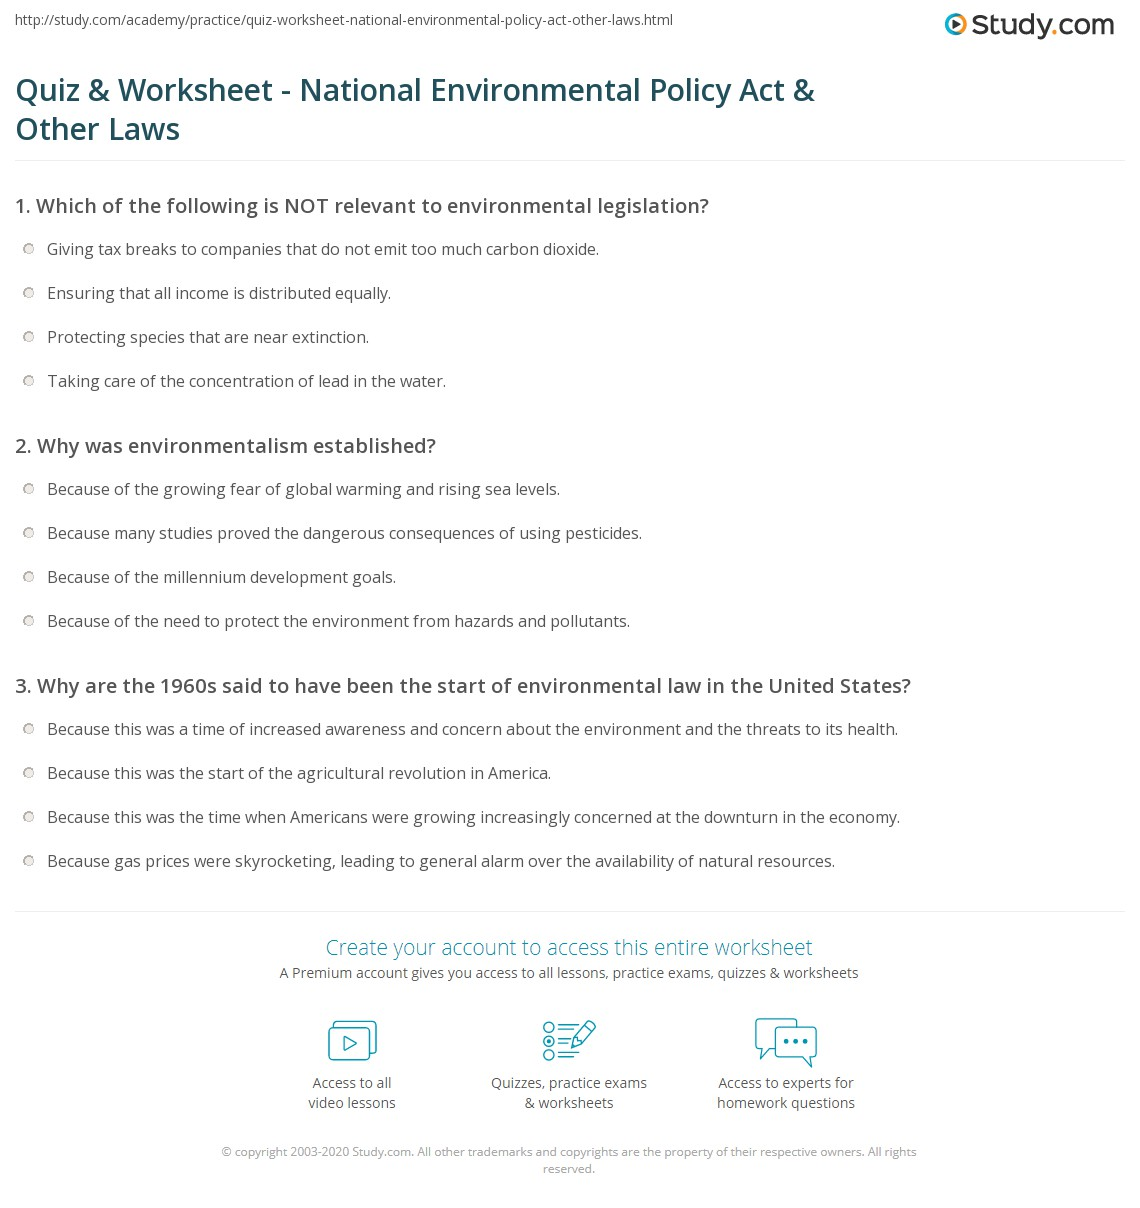 quiz worksheet national environmental policy act other laws already registered login here for access